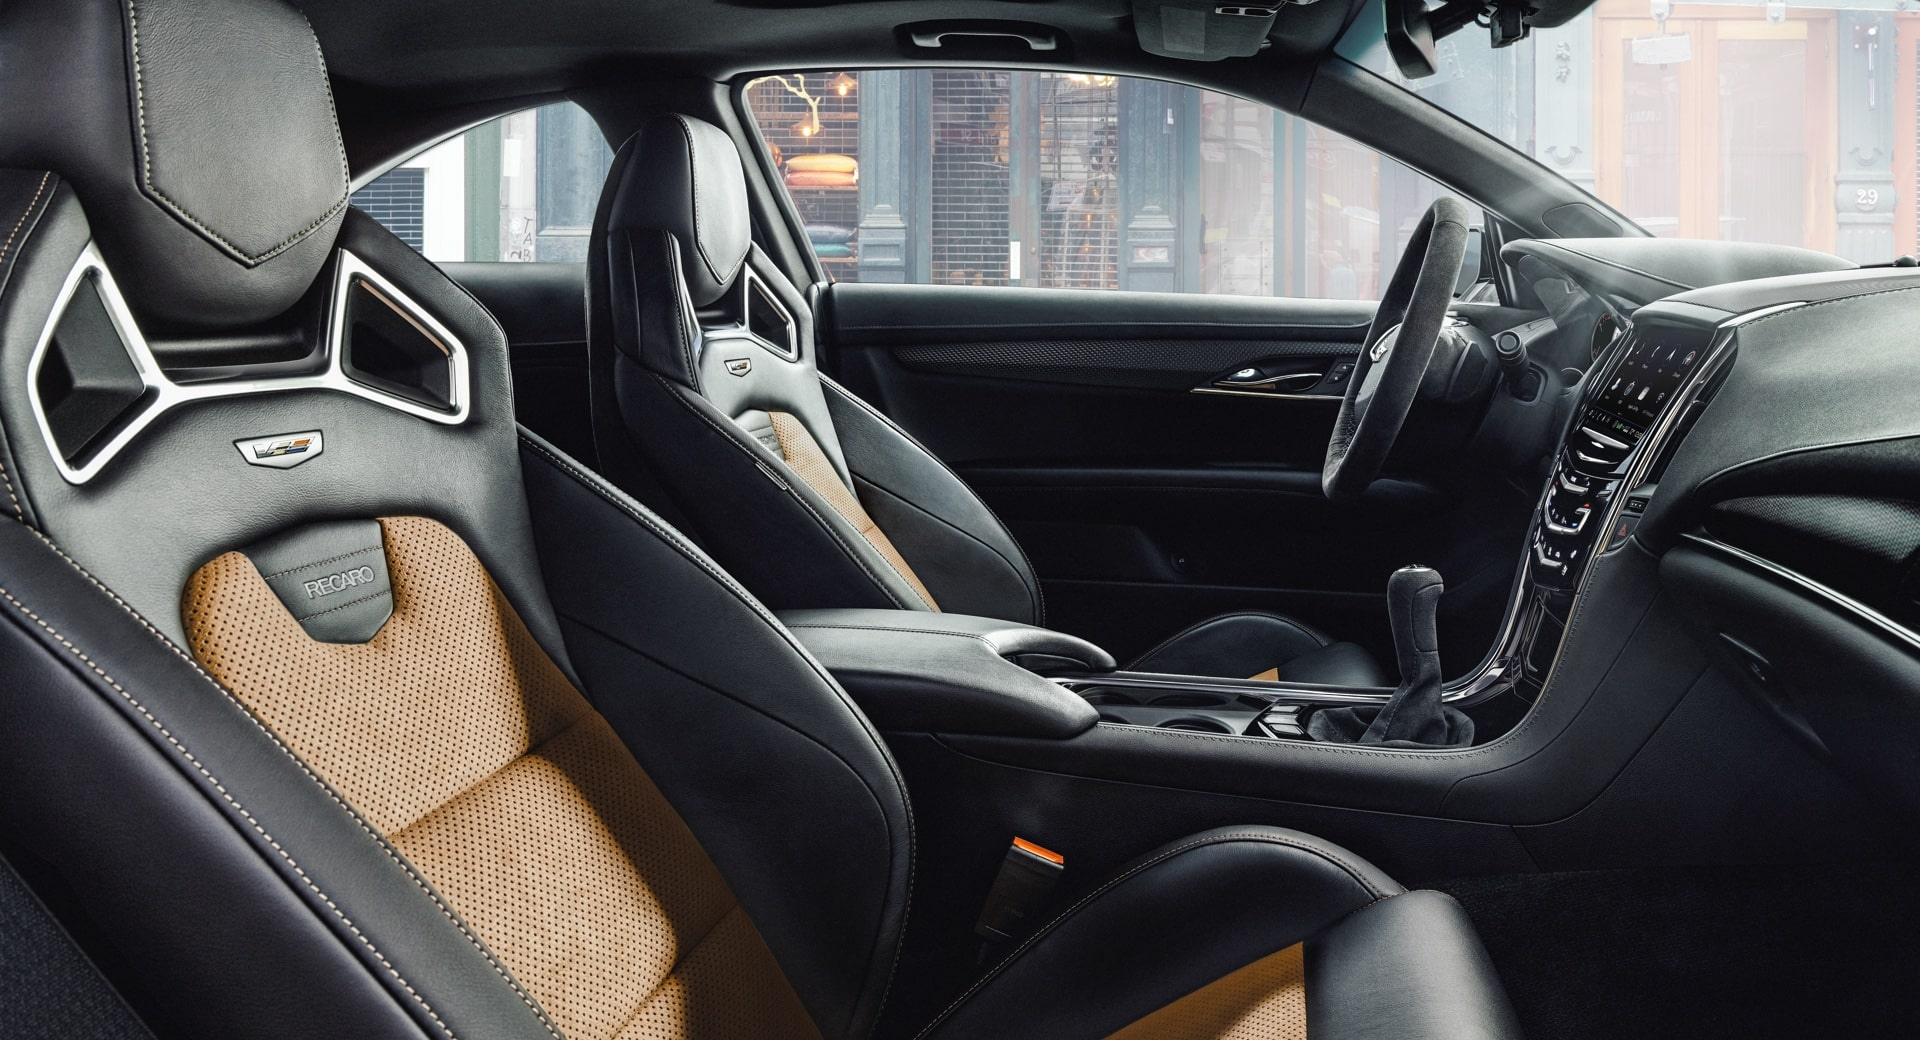 Recaro Seats In ATS V Coupe